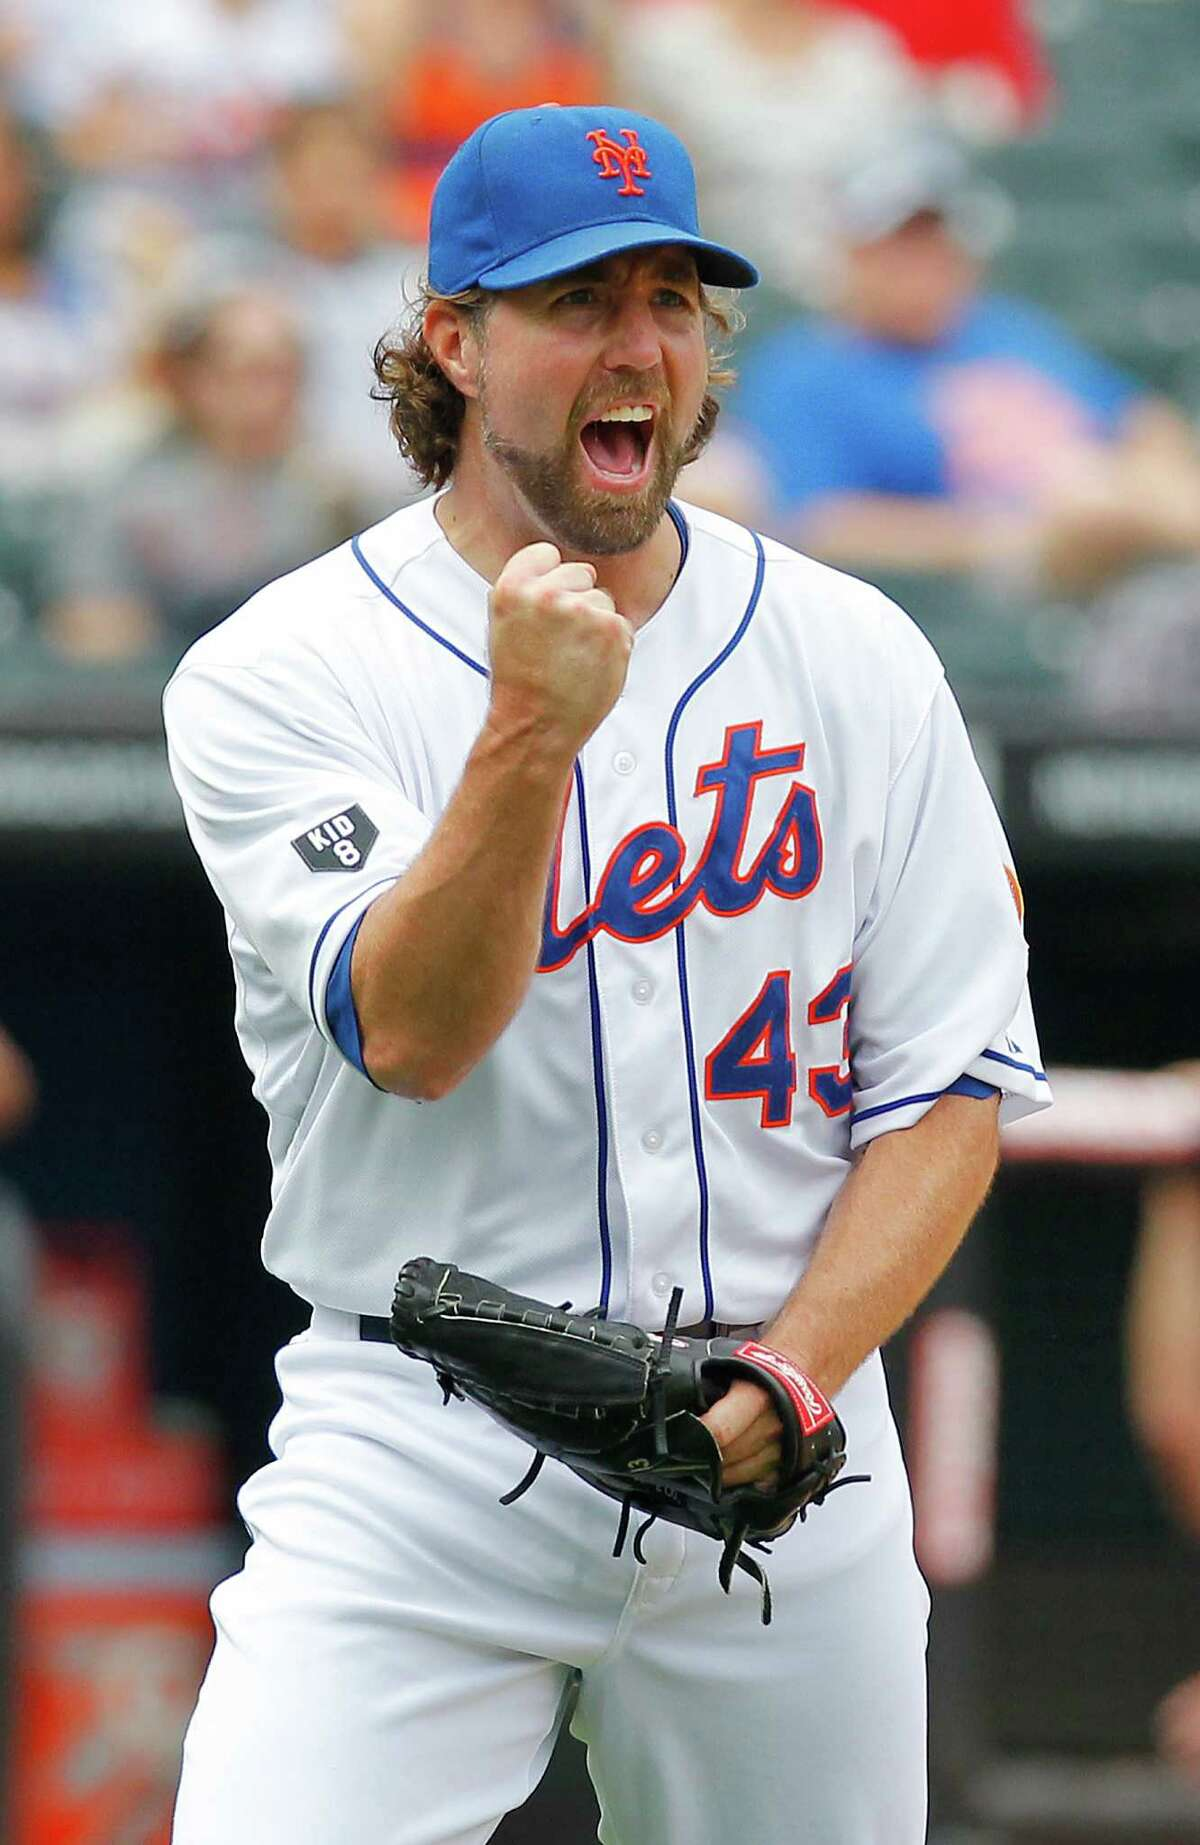 New York Mets pitcher R.A. Dickey reacts to a double play which ended the top of the fifth inning of a baseball game against the Houston Astros in New York, Saturday, Aug. 25, 2012. (AP Photo/Paul J. Bereswill)